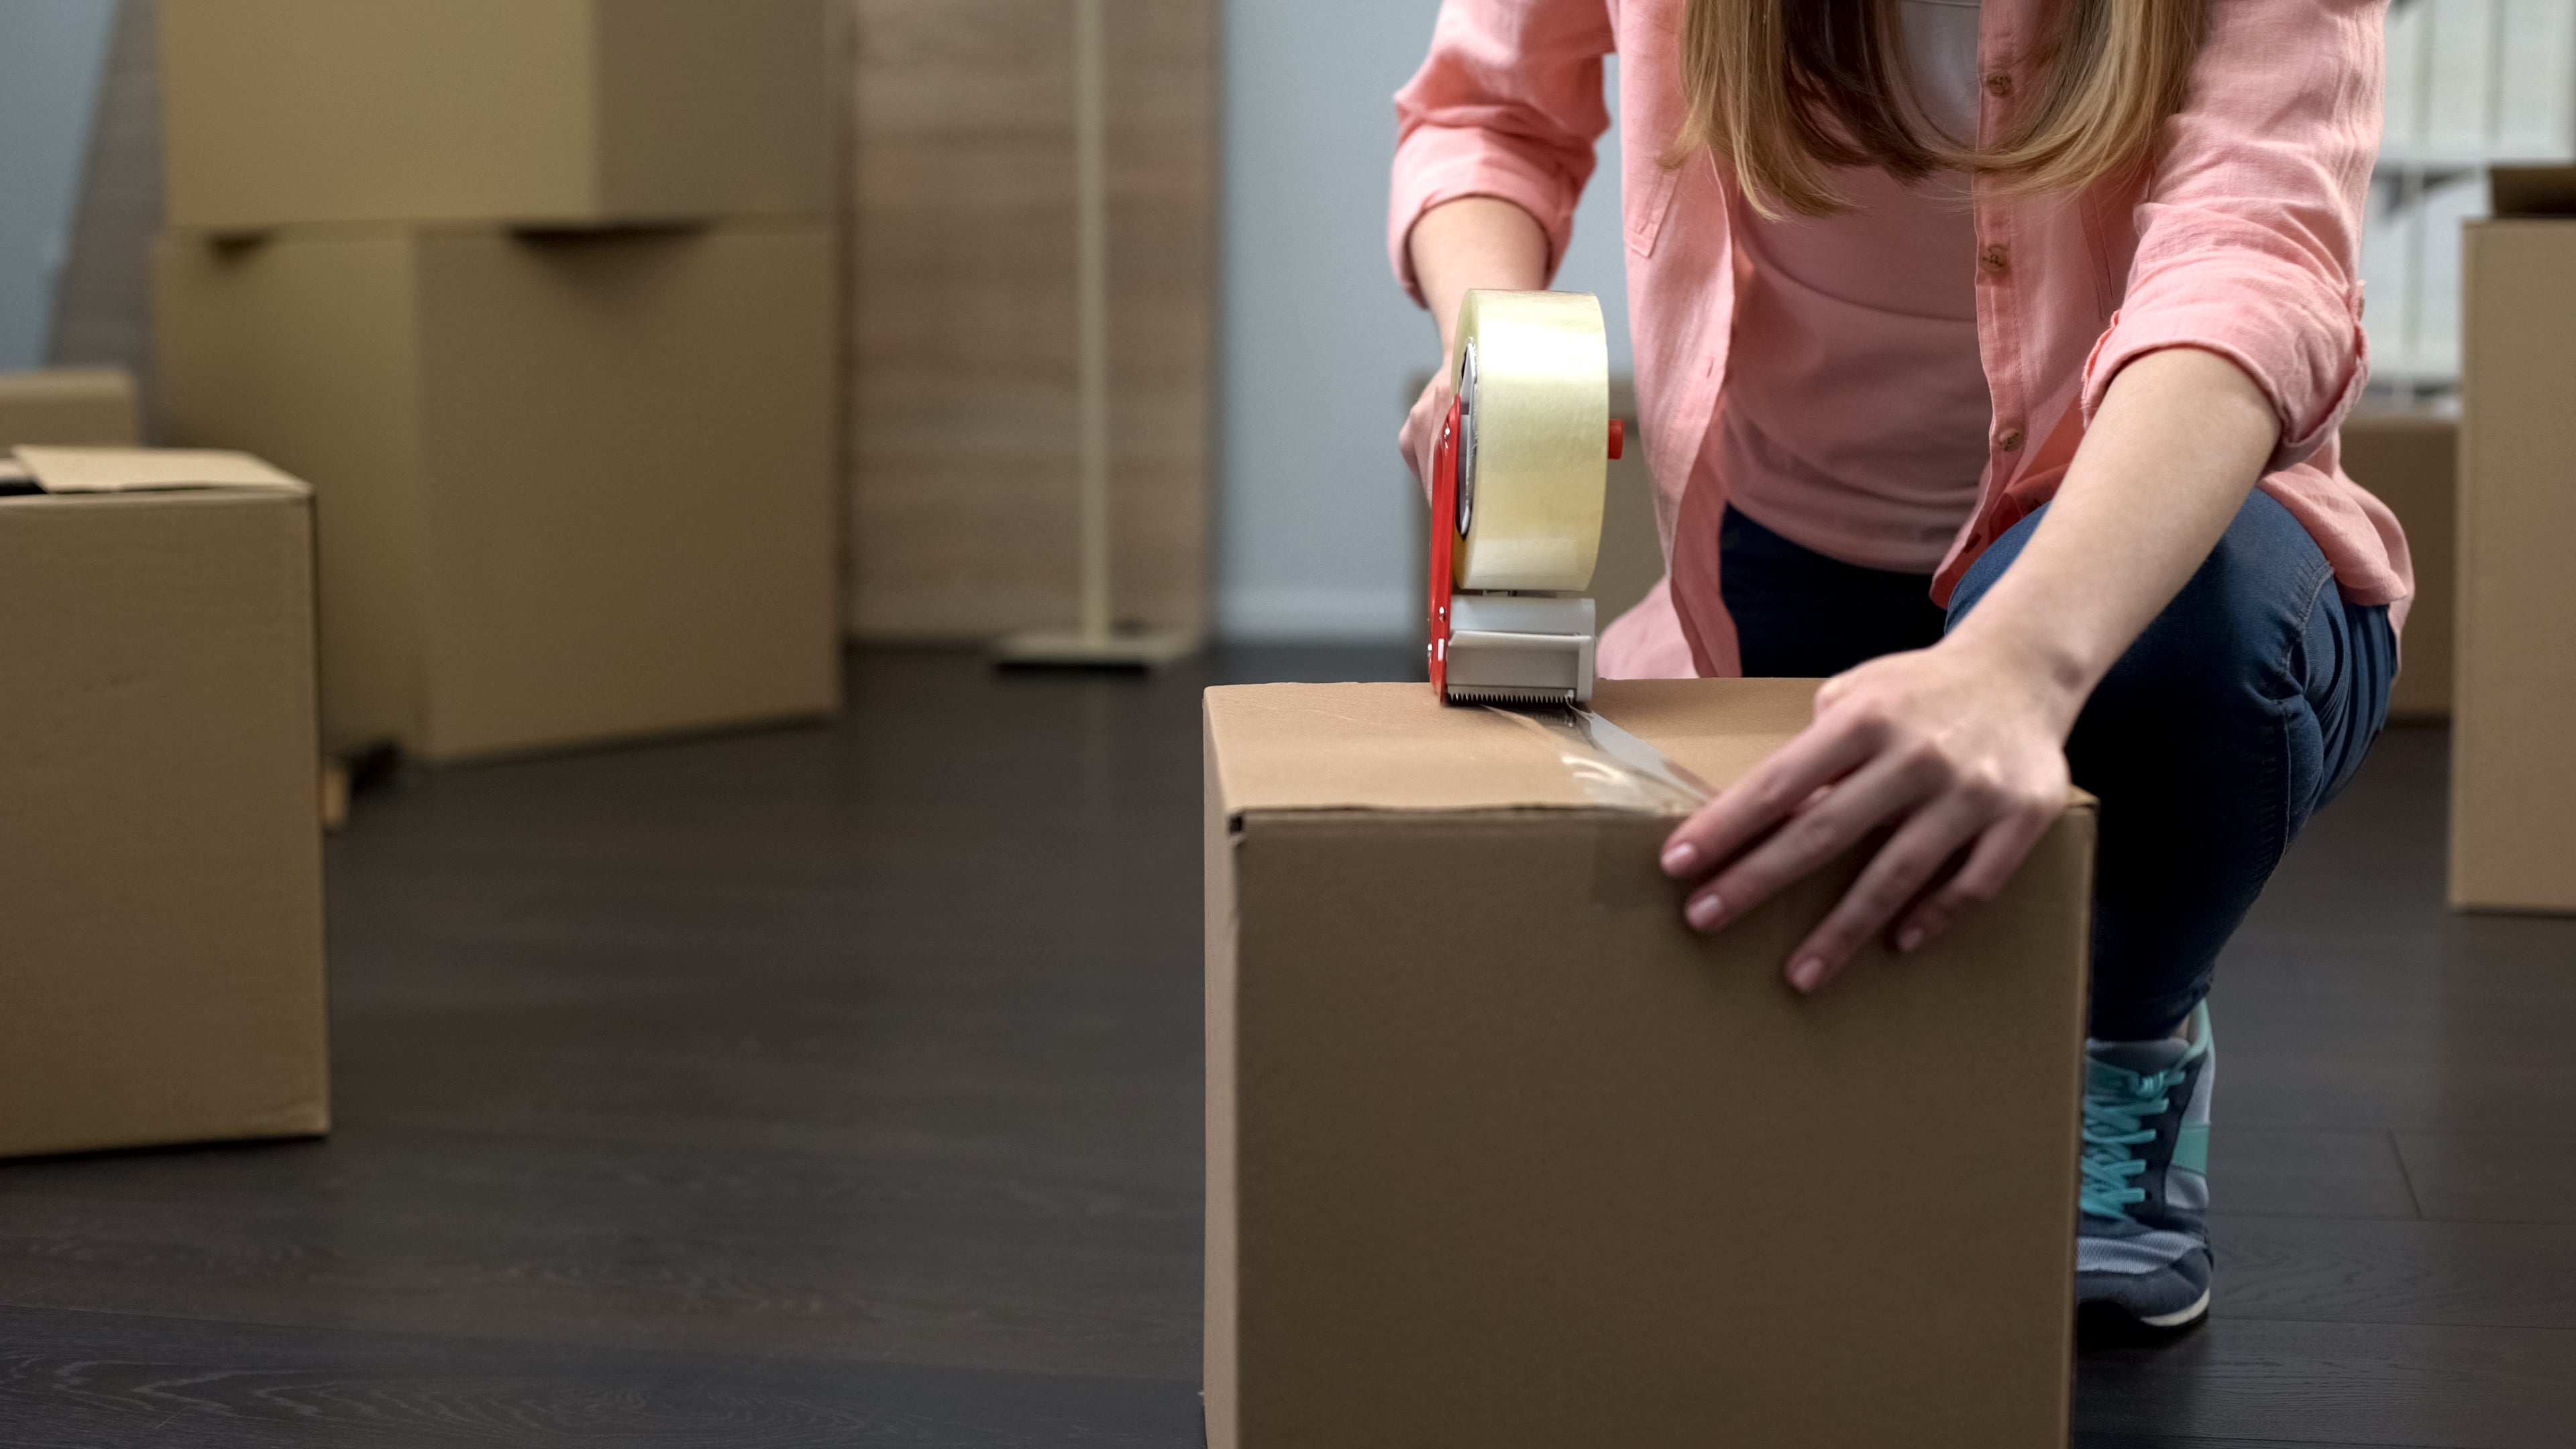 Family Law| Relocation With Children in Separation